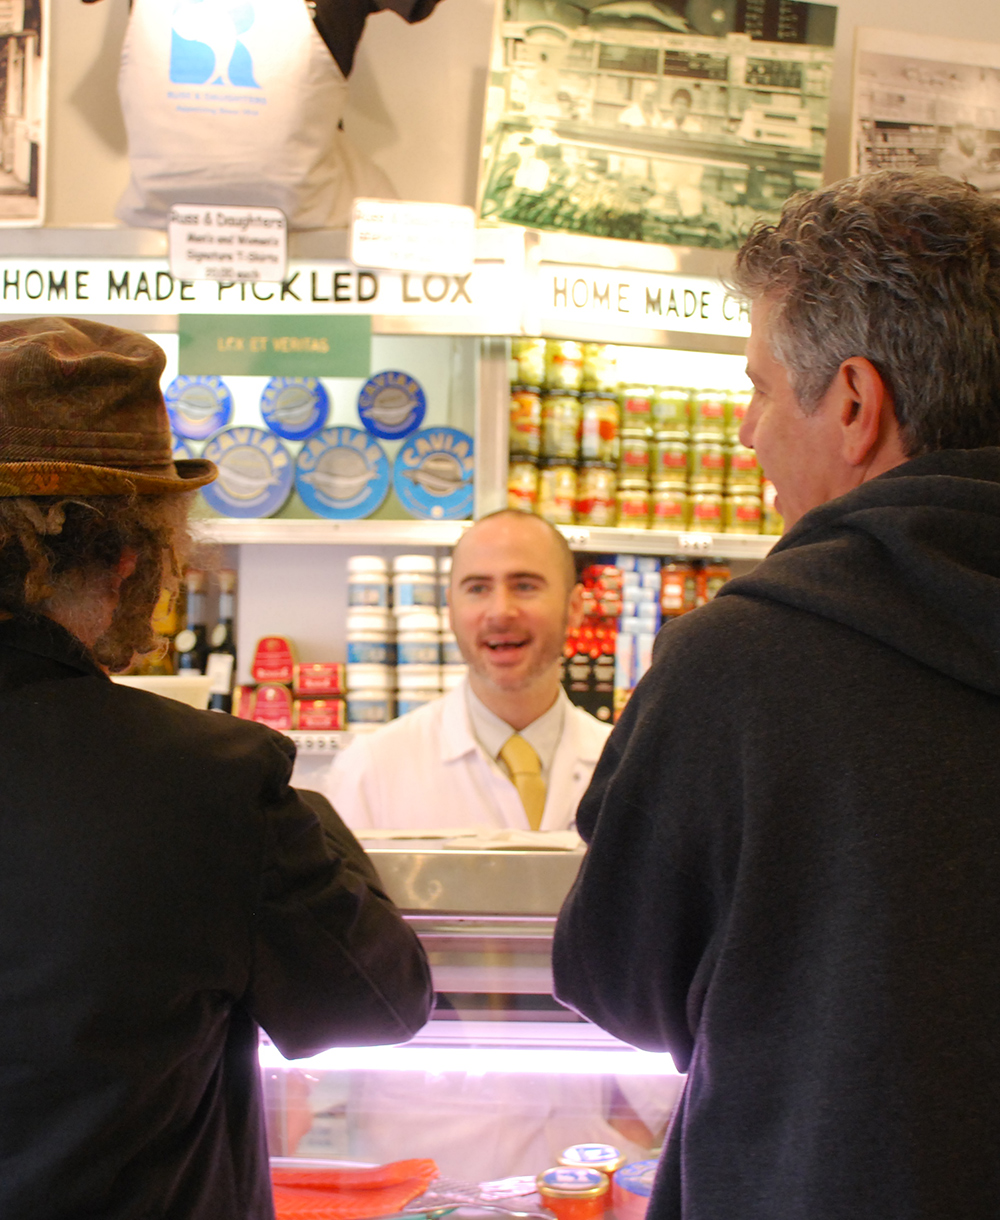 Staff and customers at counter